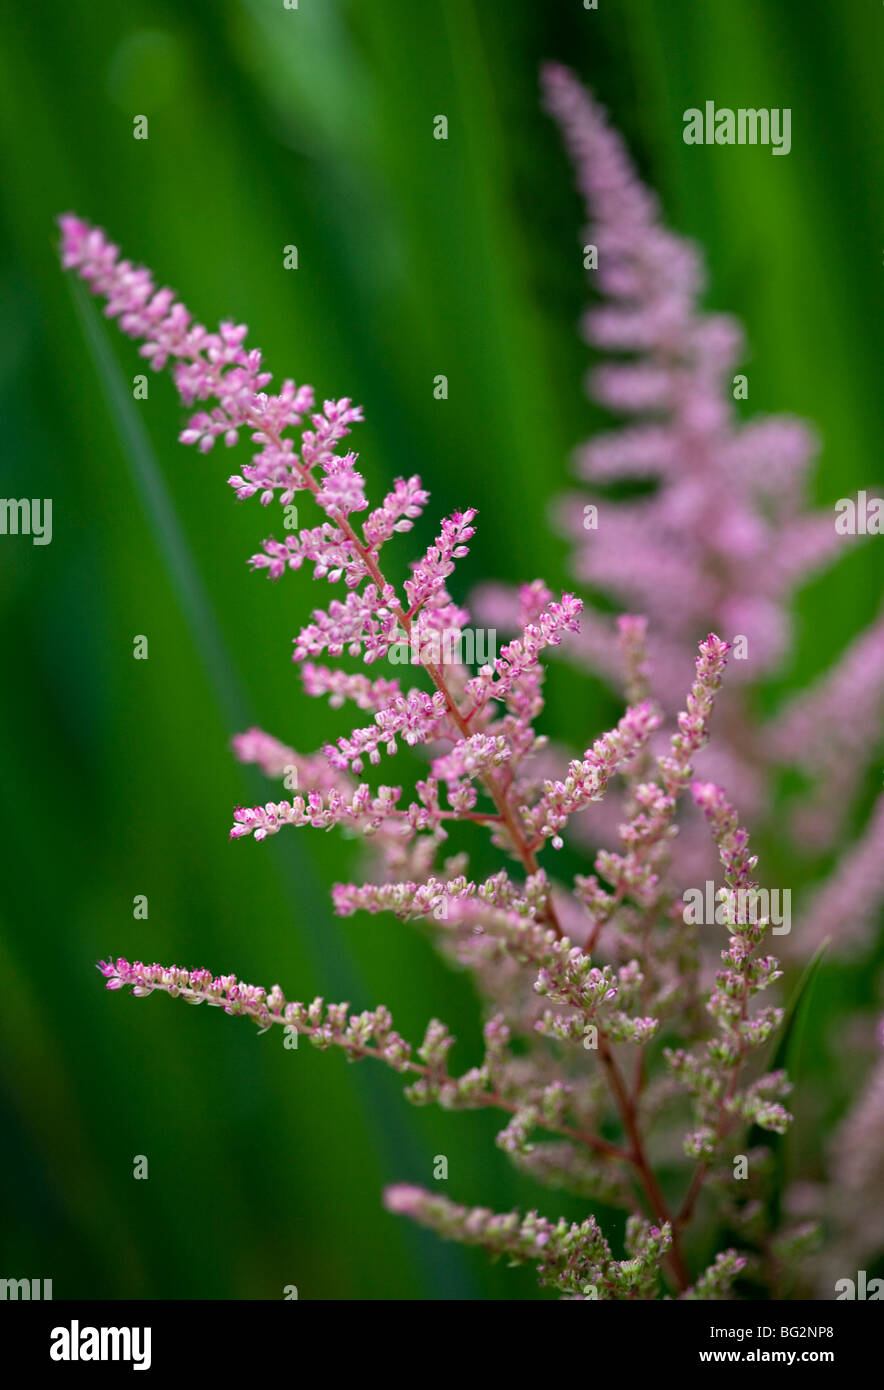 astilbe rose banque d'images, photo stock: 27105856 - alamy